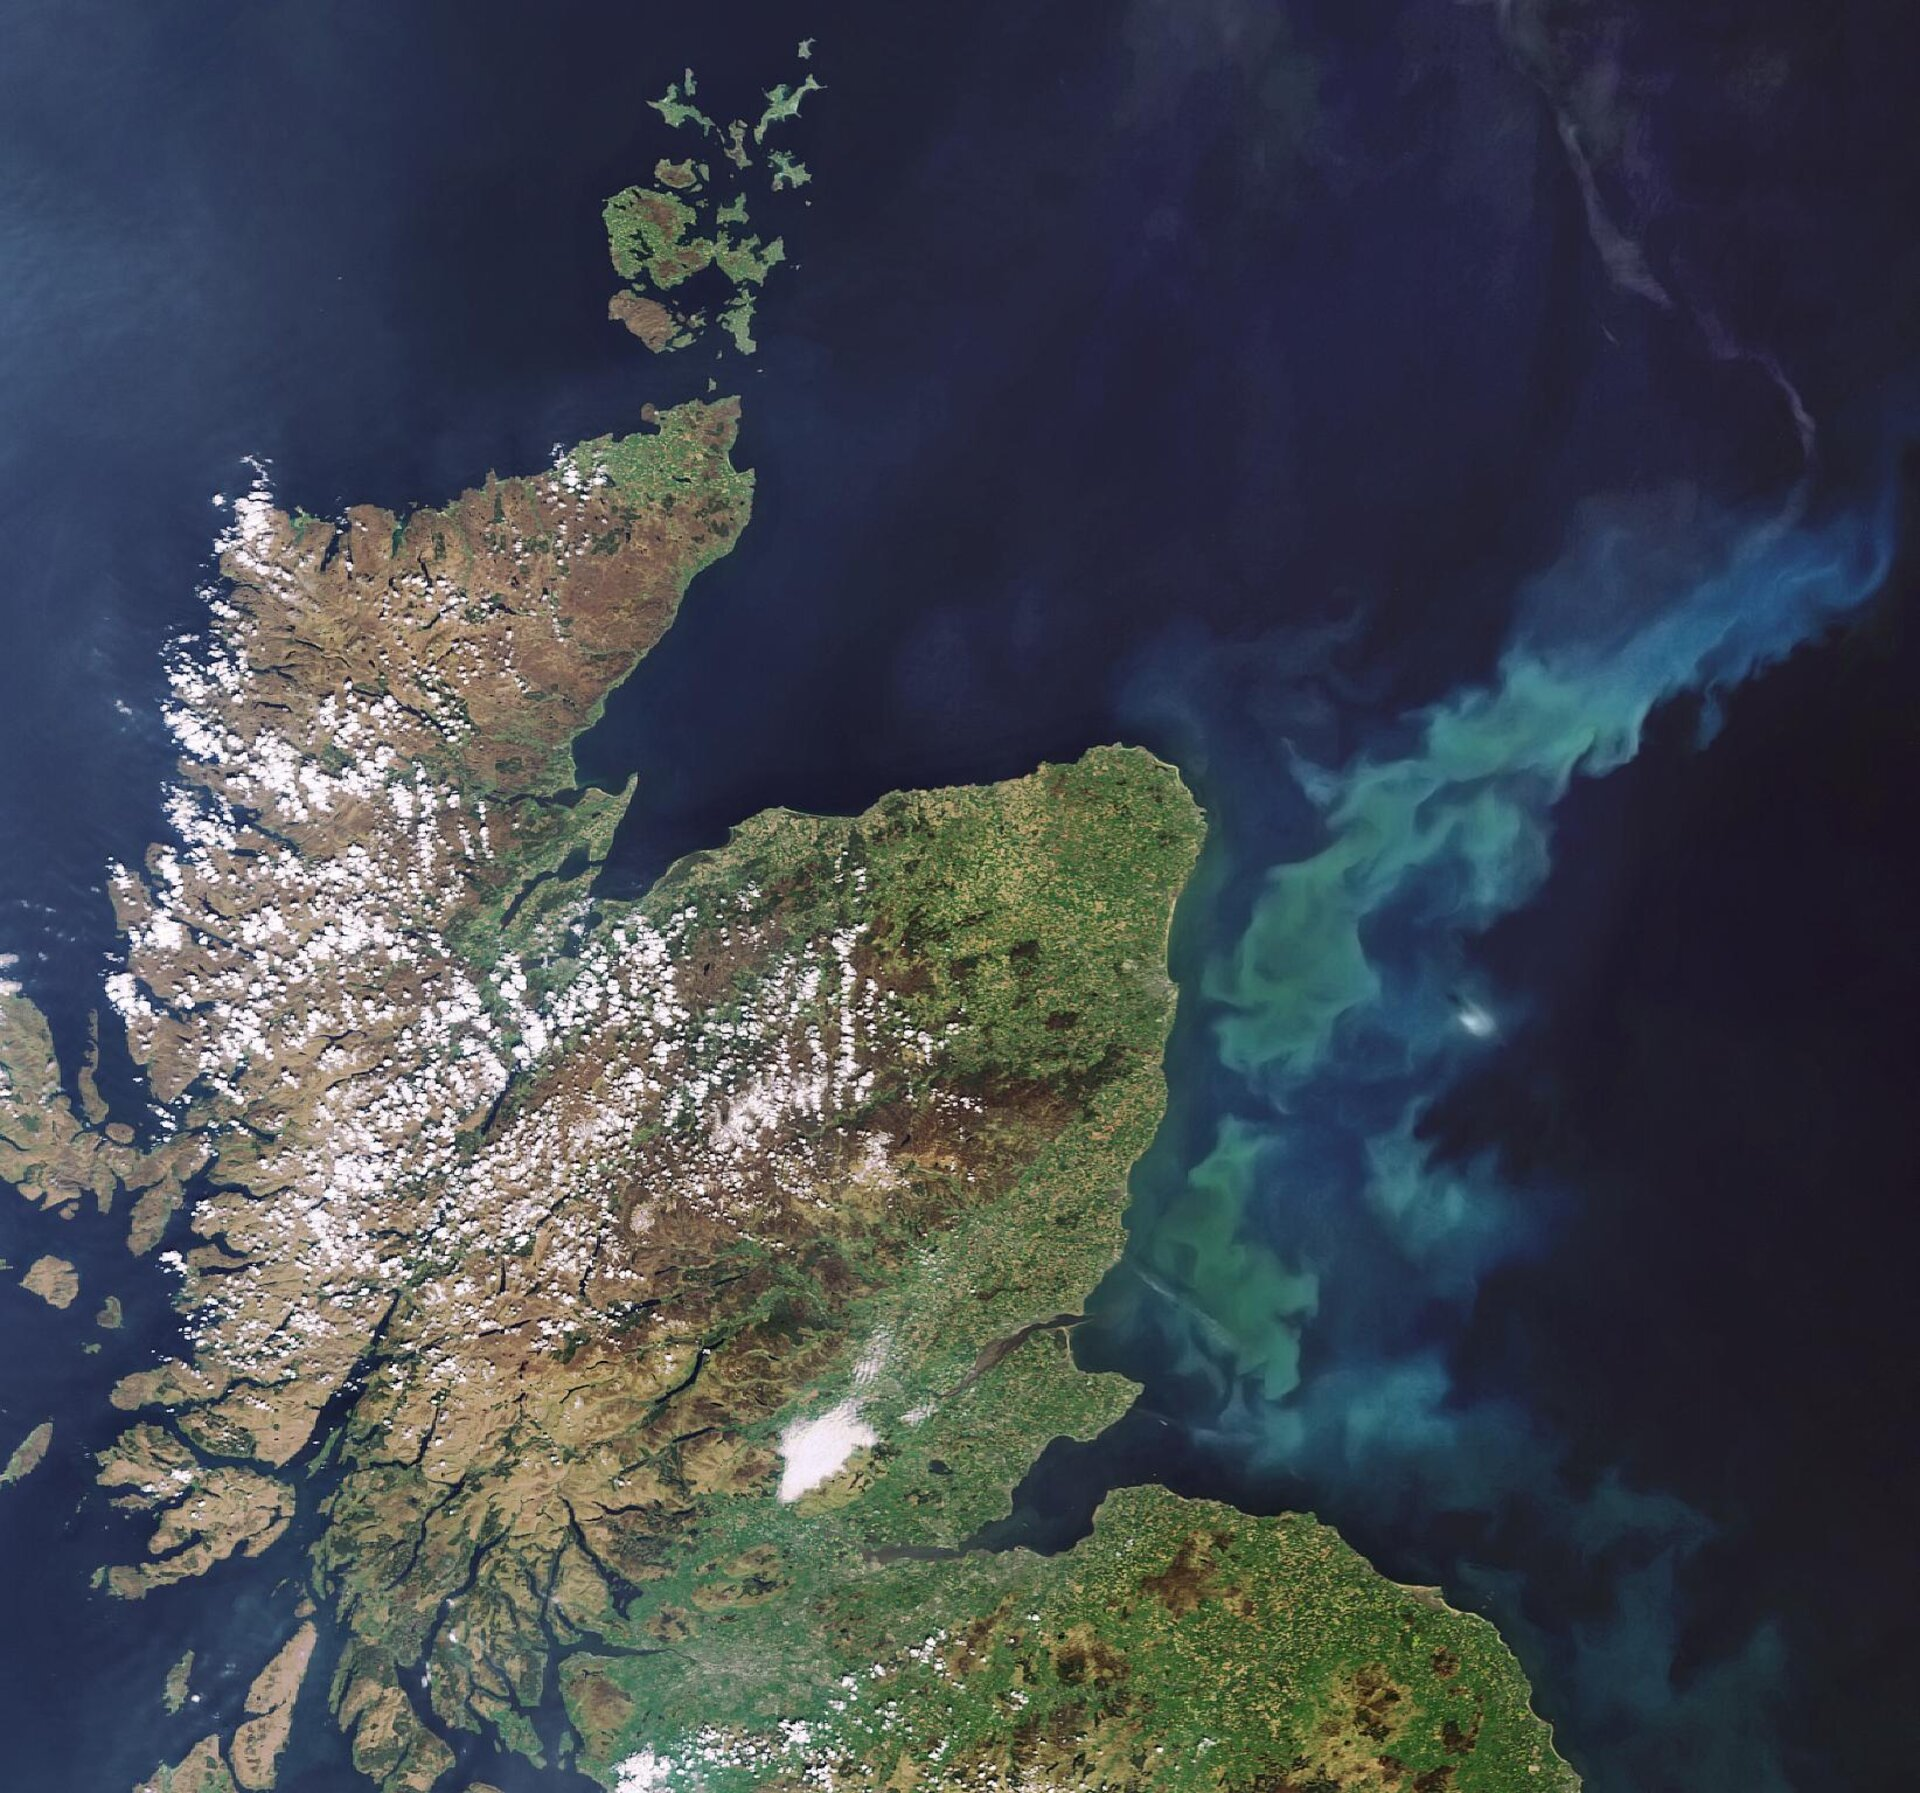 Phytoplankton bloom off the coast of Scotland